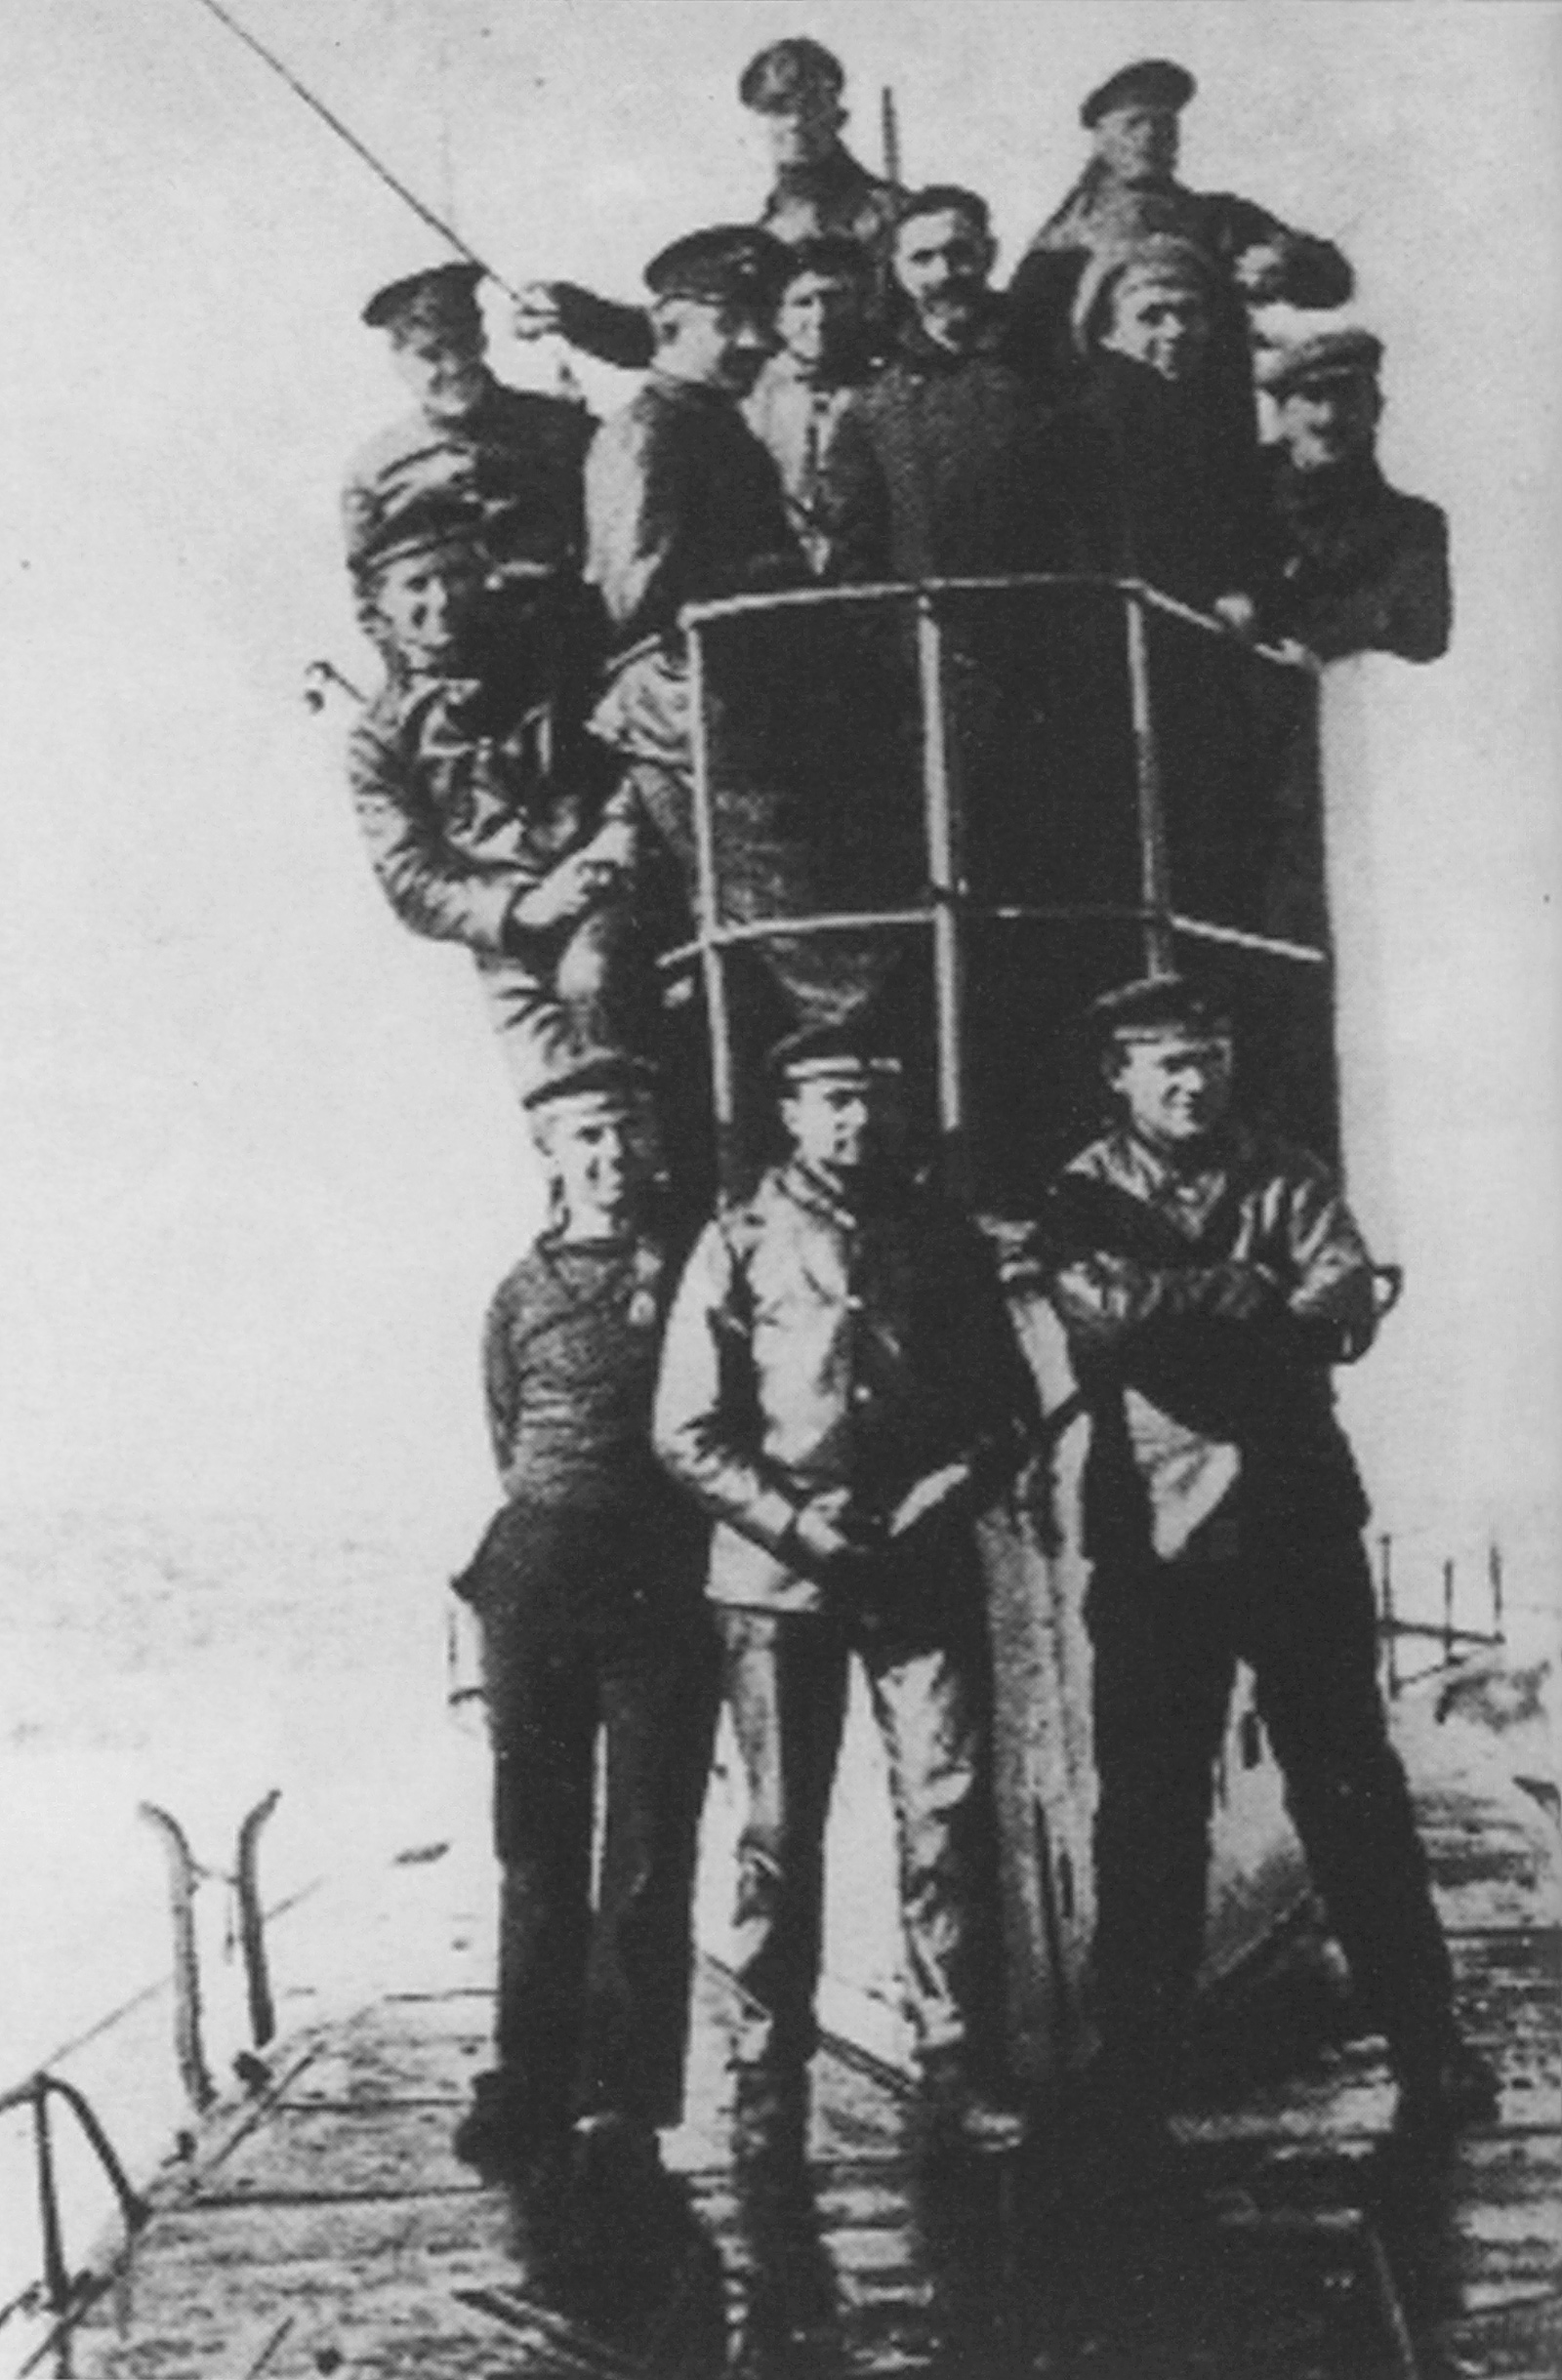 Roger Casement and others on board a German submarine carrying them to Ireland, April 1916